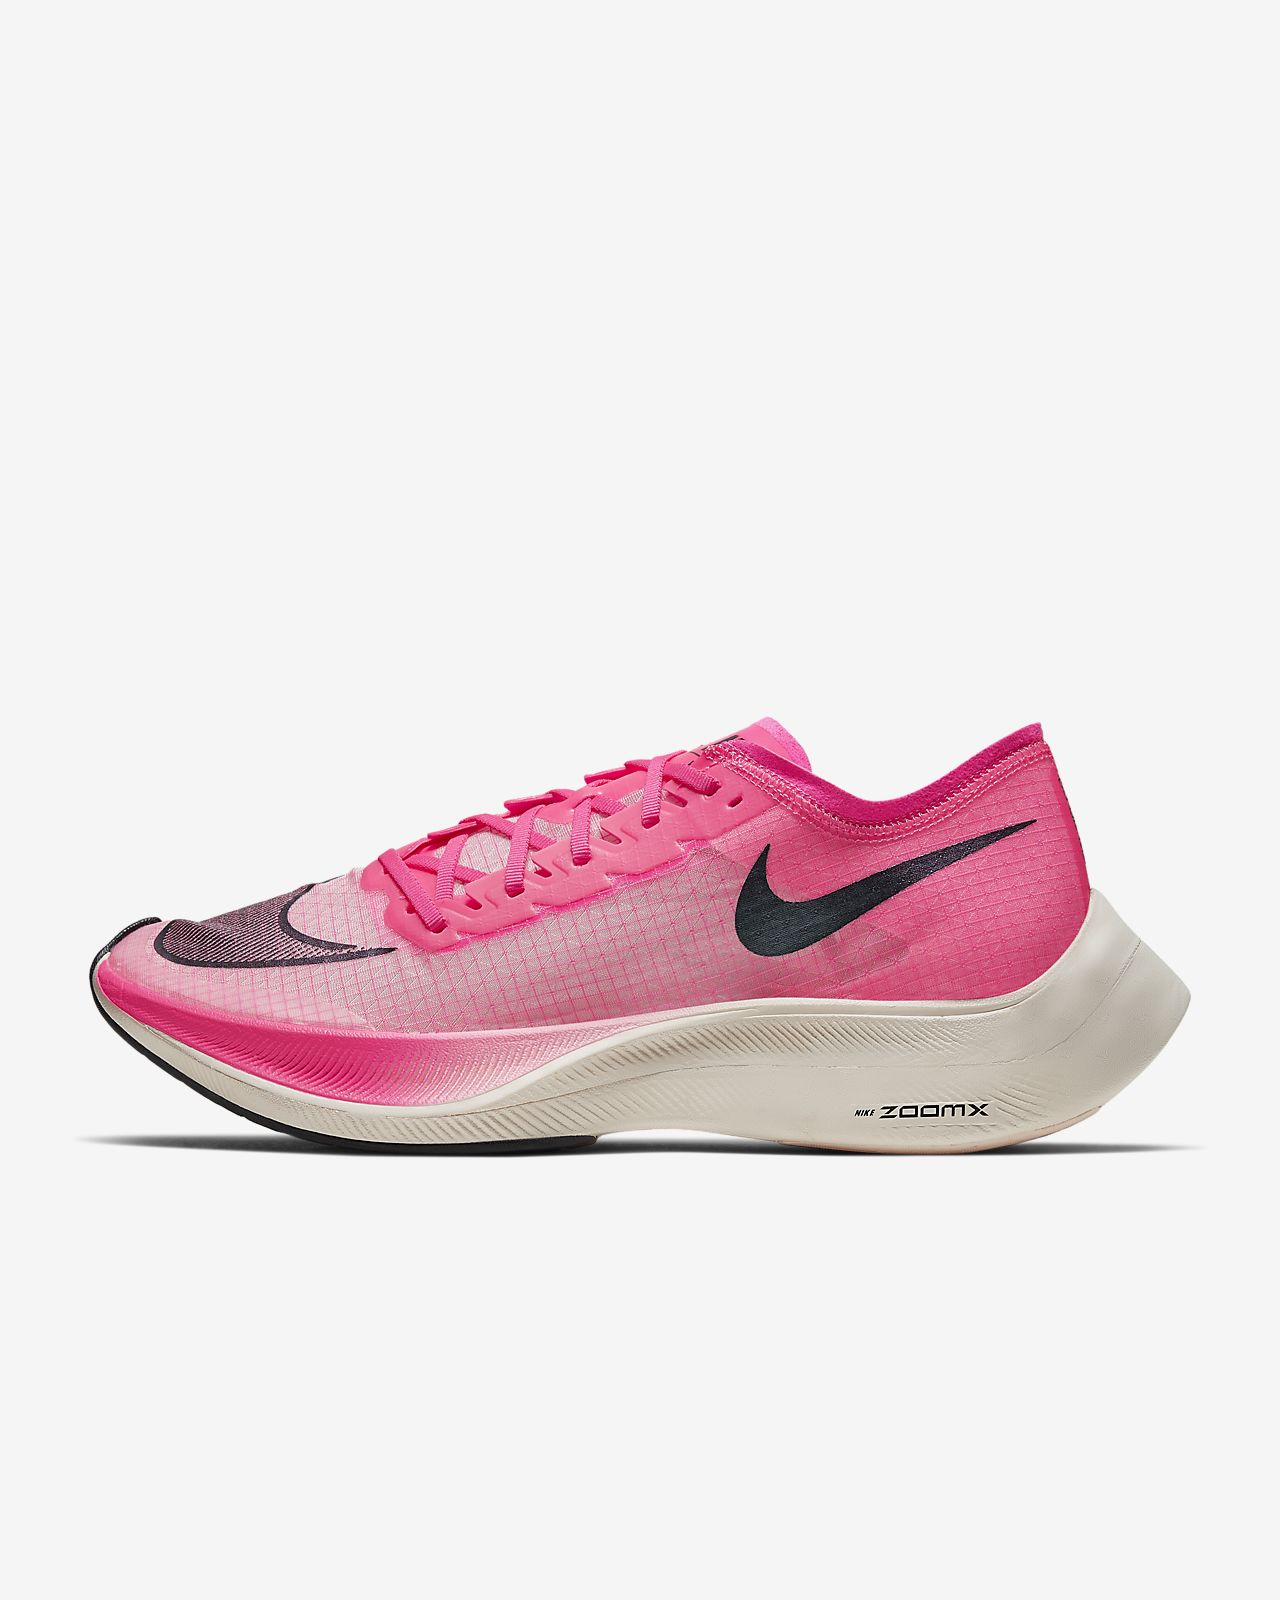 discount shop cheap authentic quality NIKE公式】ナイキ ズームX ヴェイパーフライ ネクスト% ランニング ...